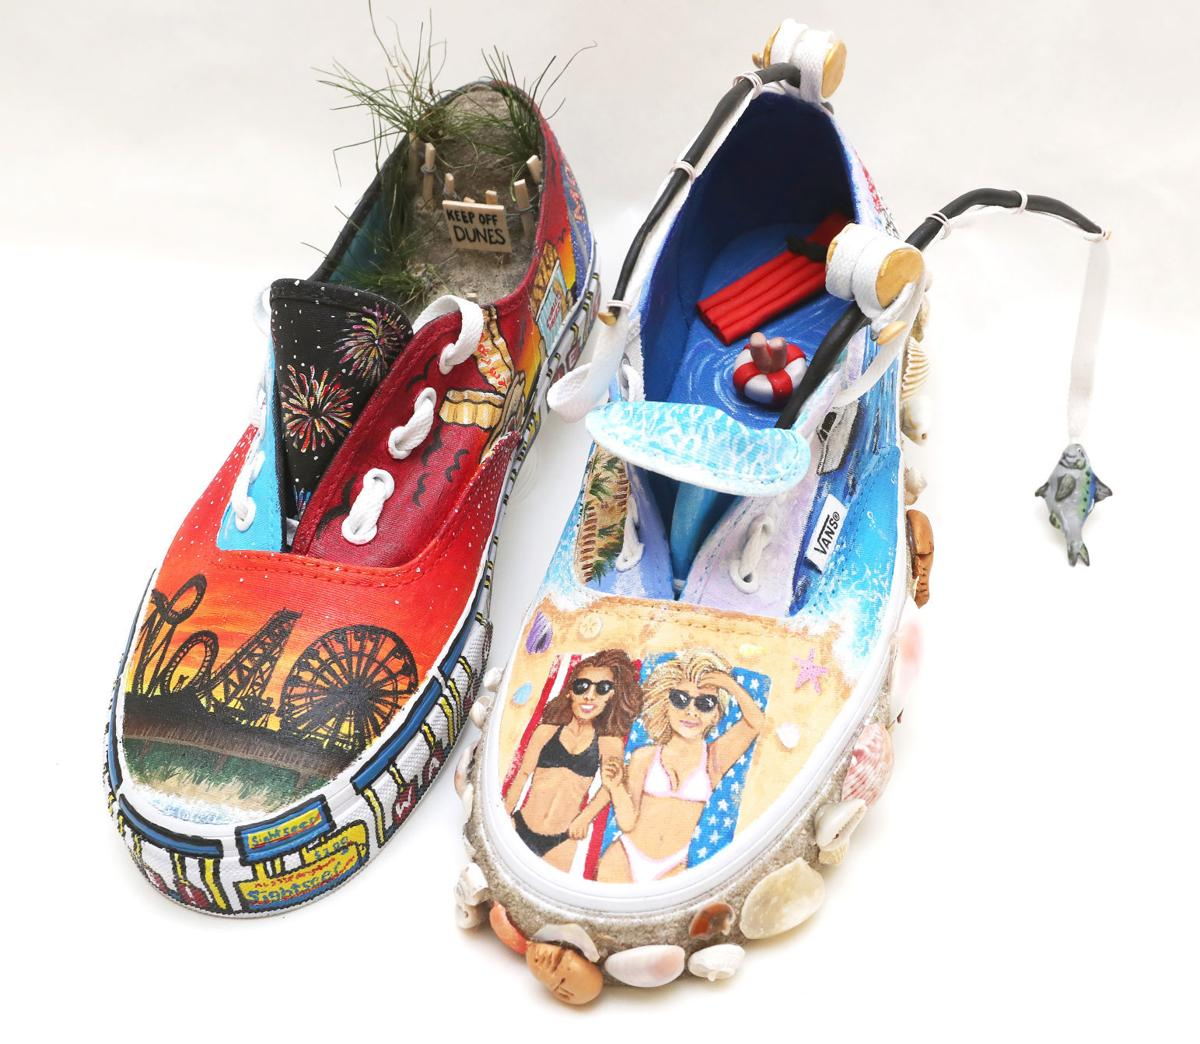 f74dca660545f5 Middle Twp. High School students finalists in Vans art contest for  75K